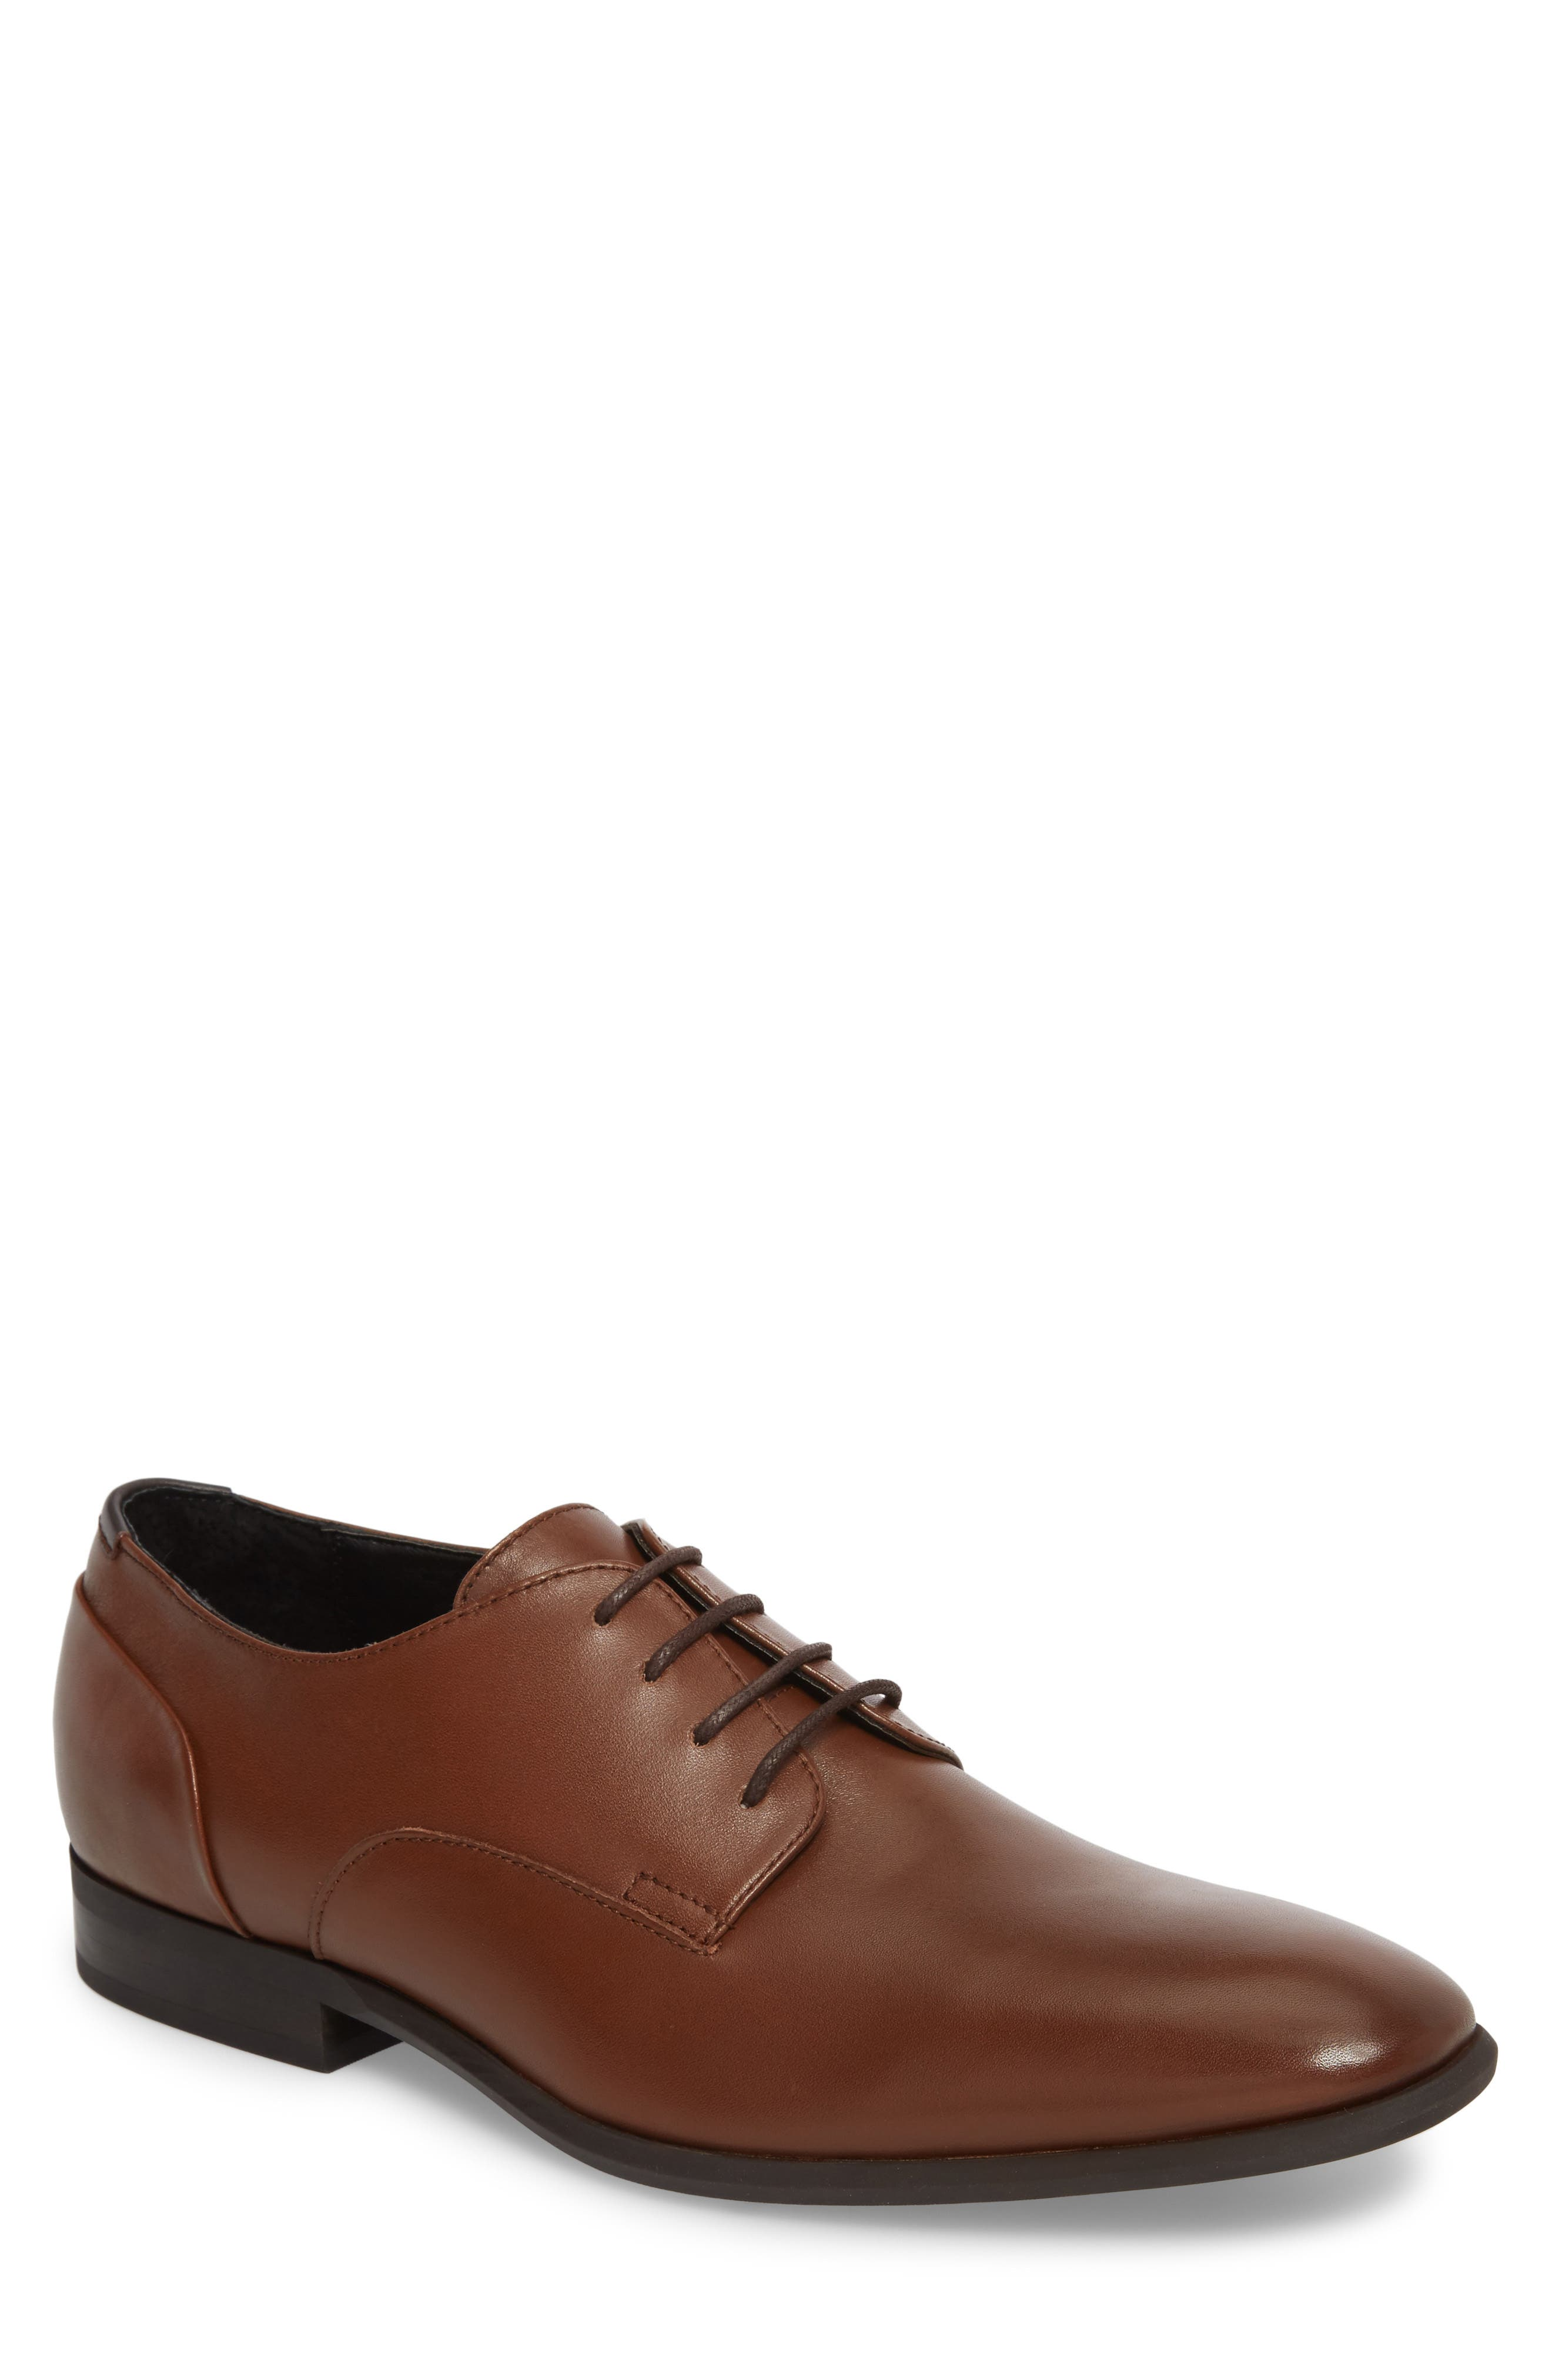 Lucca Plain Toe Derby,                         Main,                         color, Tan Leather